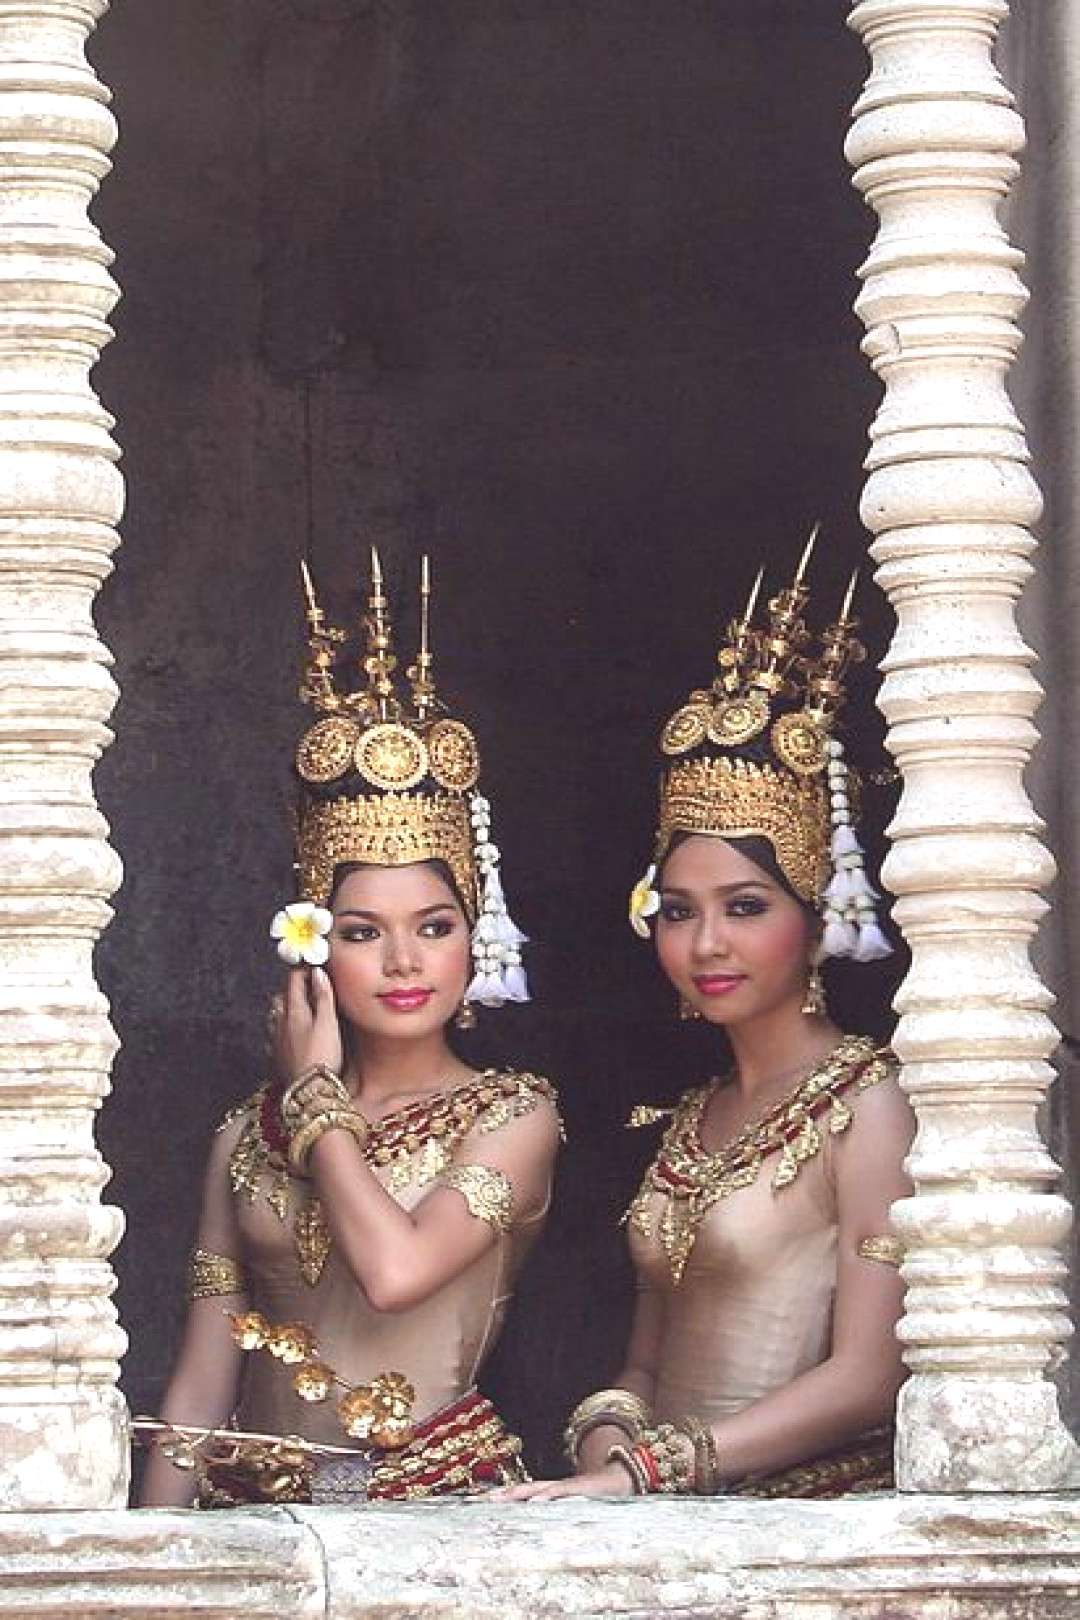 Cambodia - Angkor - World cultures - Asian beauty - People of the world - Angkor wat - I was l